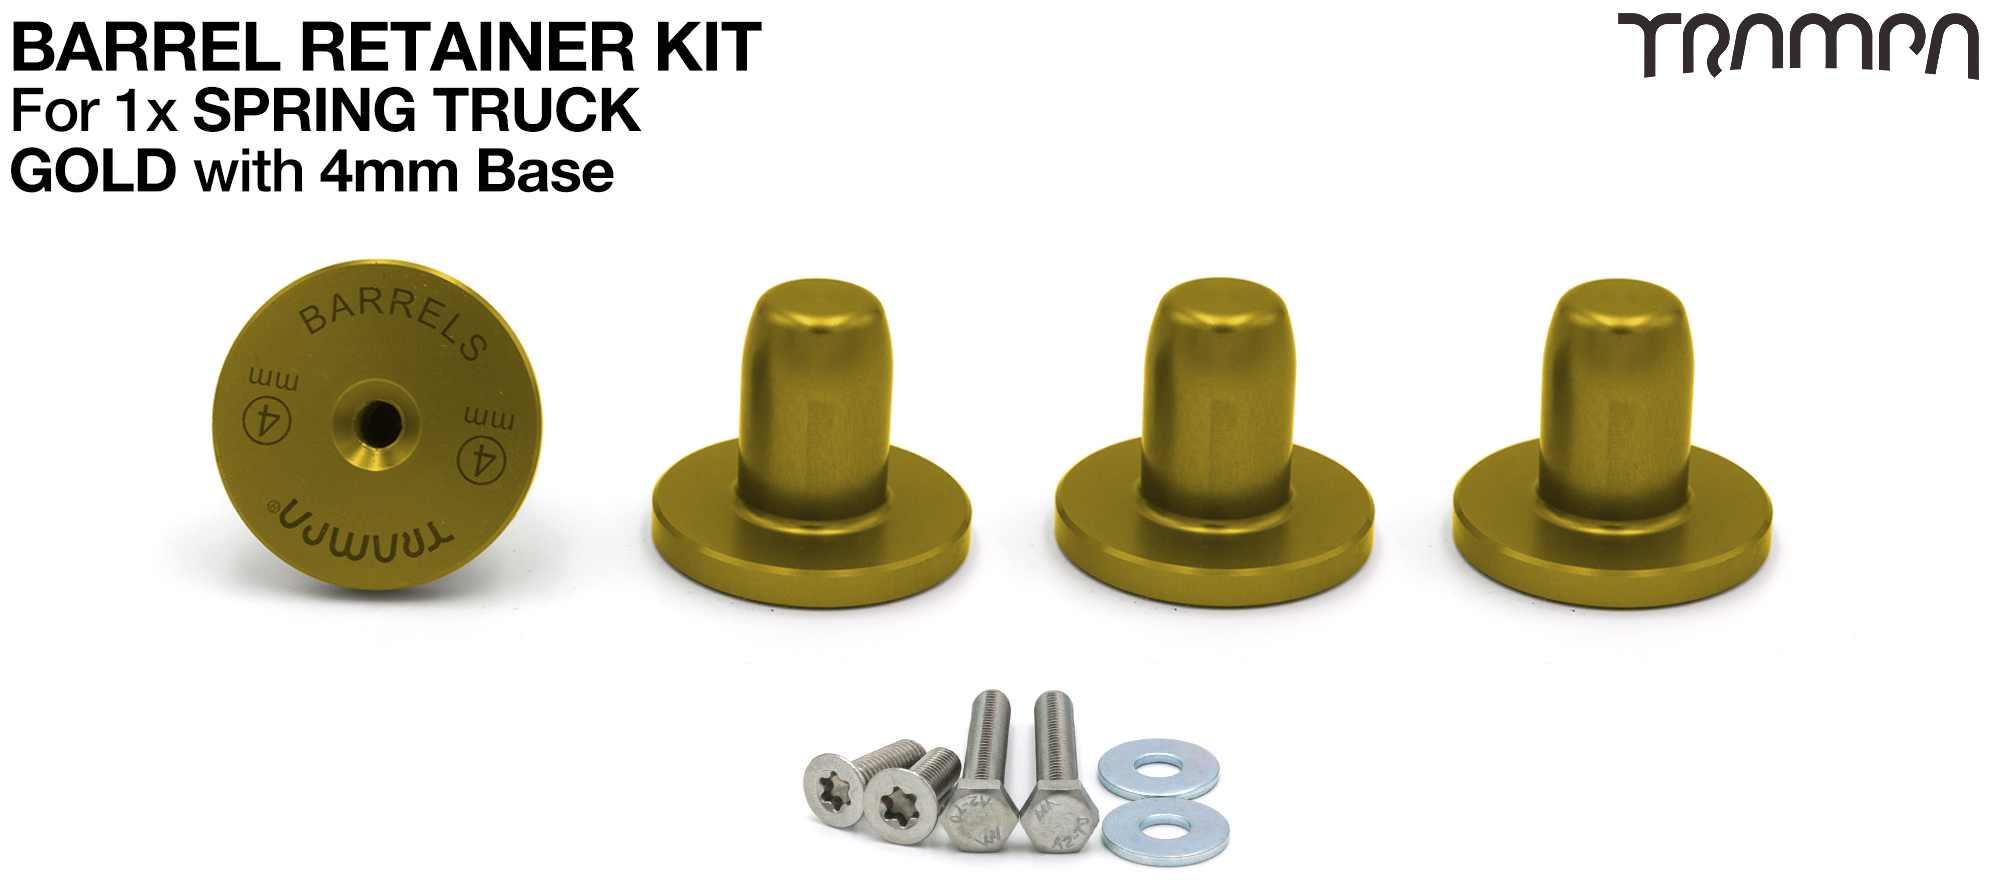 GOLD Barrel Retainers x4 with 4mm Base